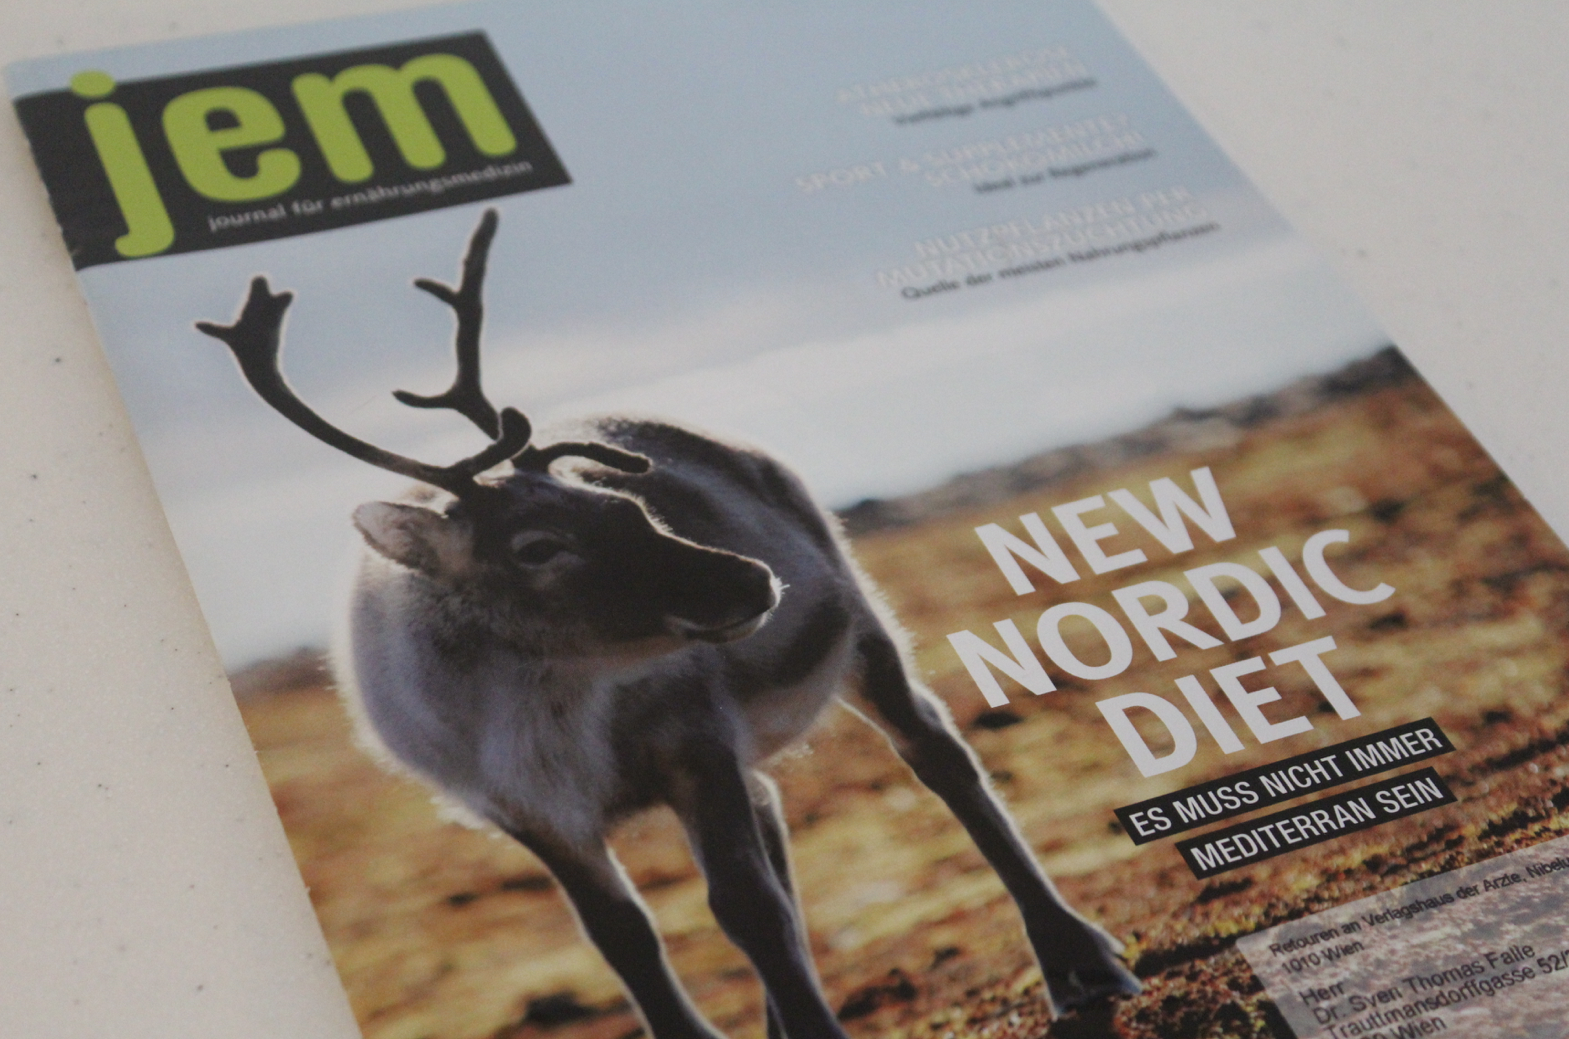 24 Jem Magazin New Nordic Diet